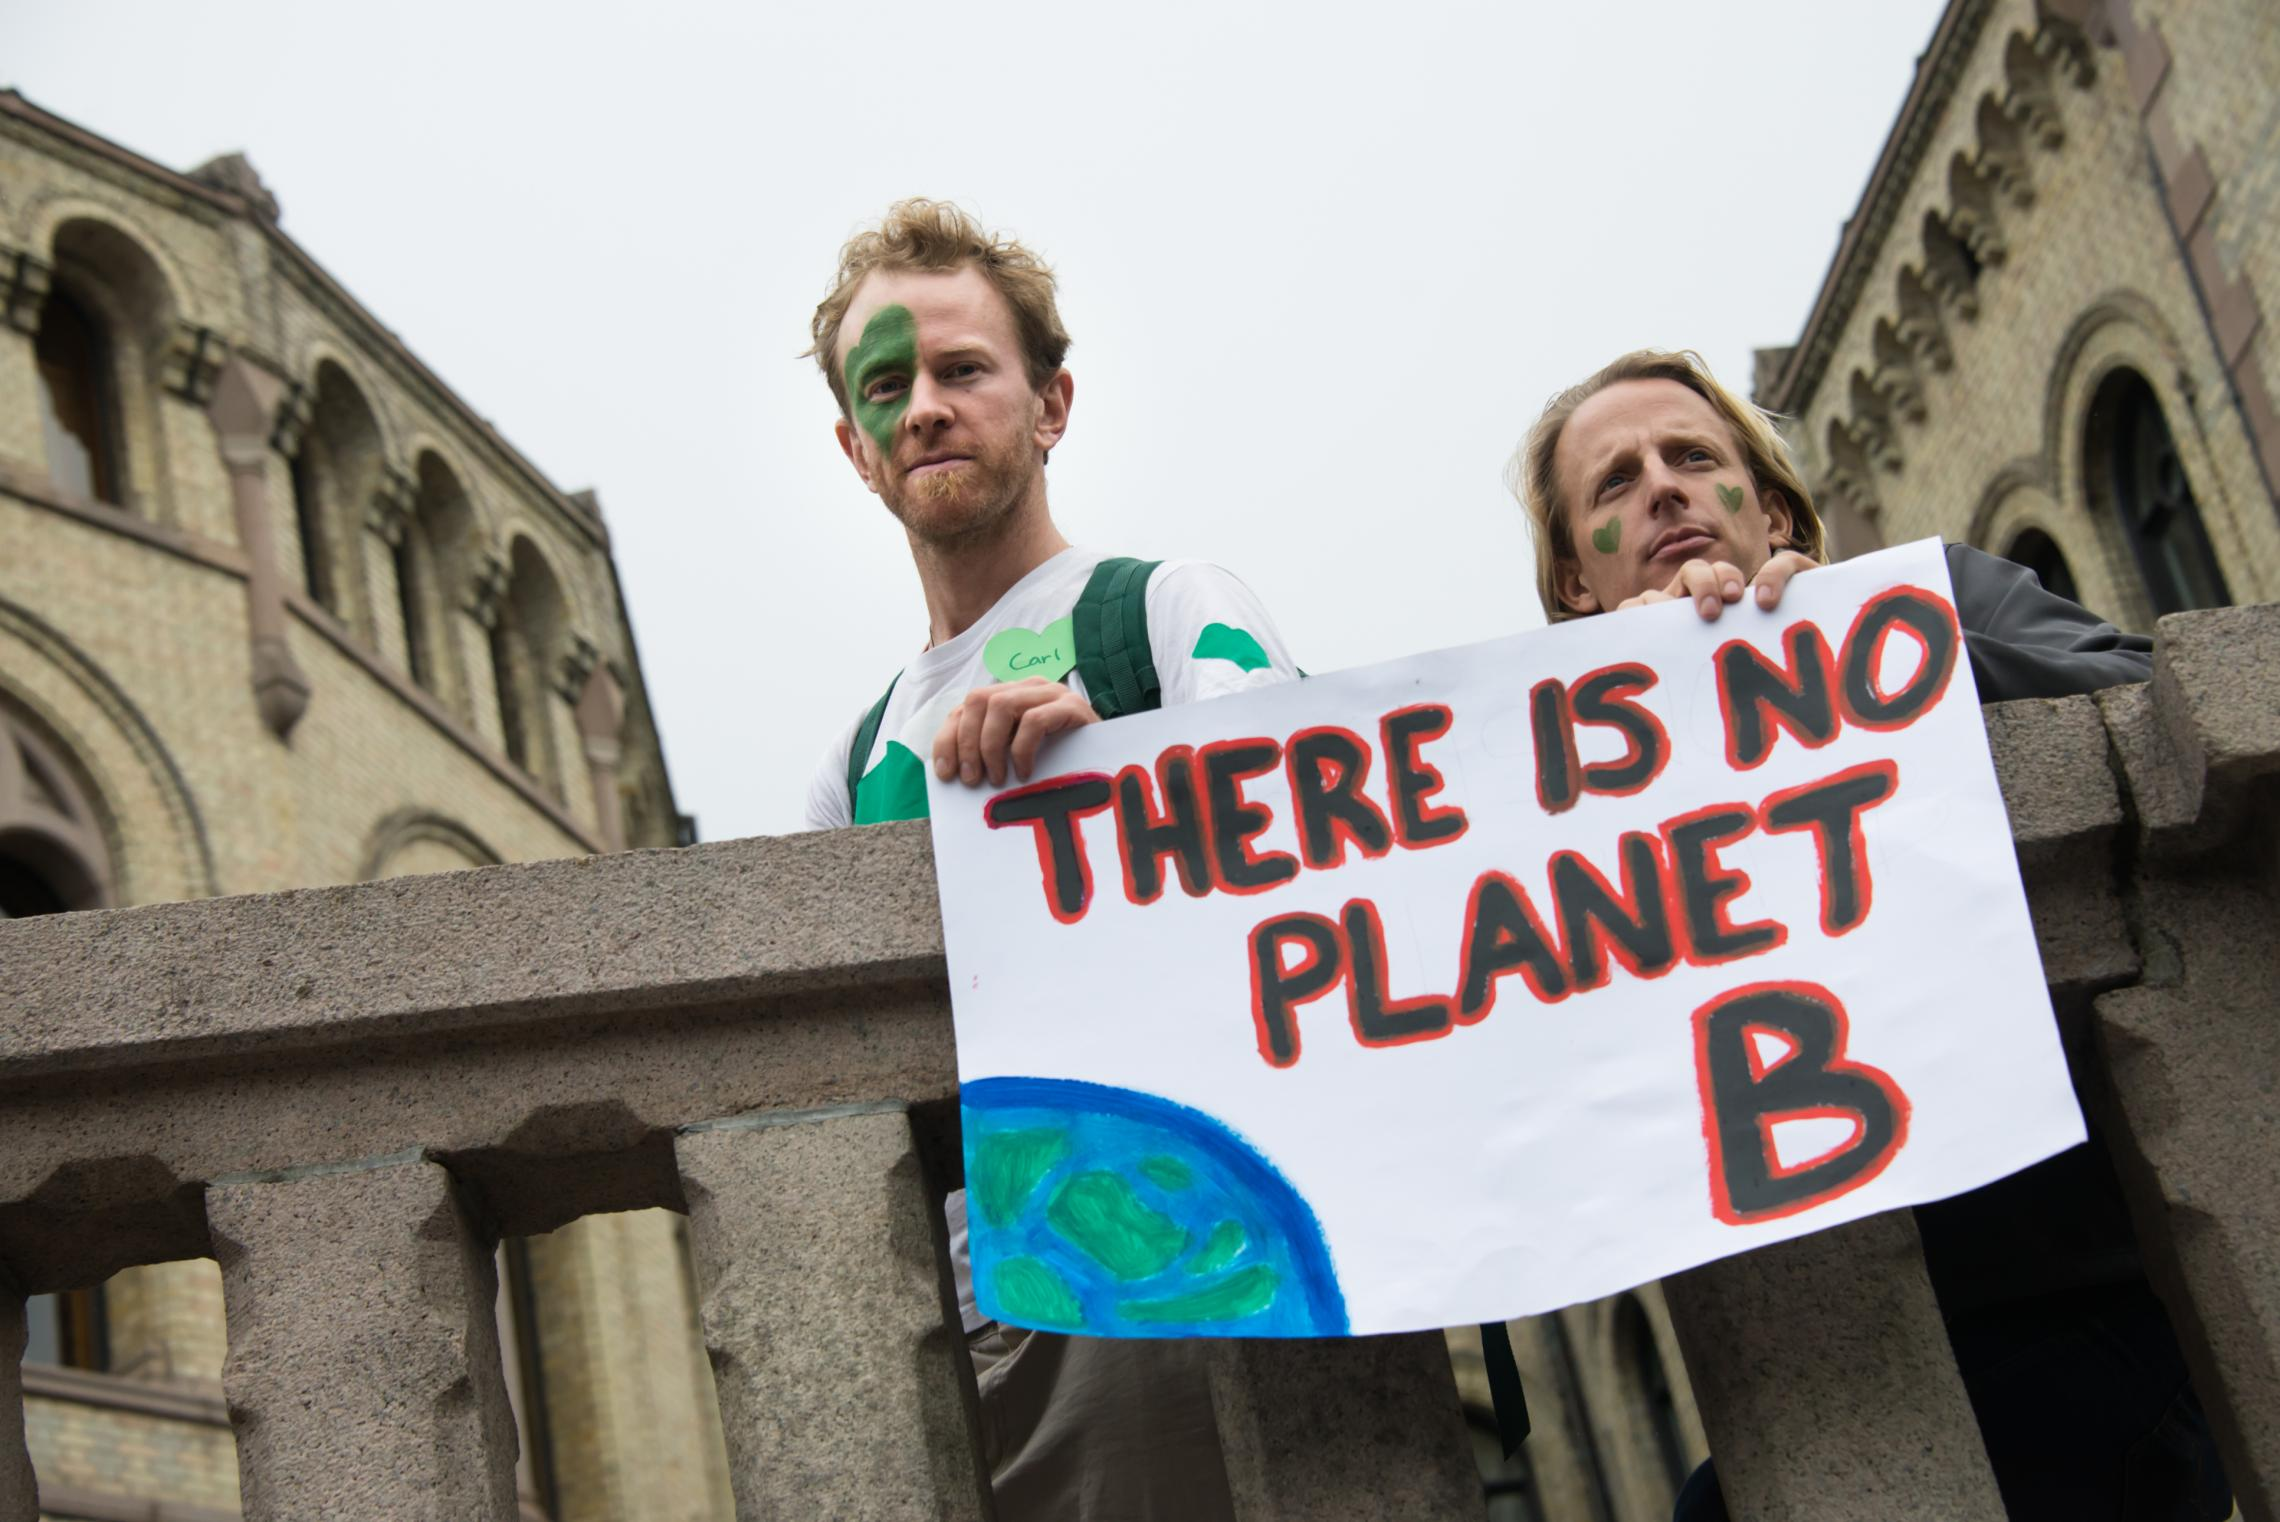 Protesters in Norway call for action on climate change. A new UVA study finds that liberals and conservatives disagree regarding common climate change mitigation strategies, but might agree on some adaptation strategies.